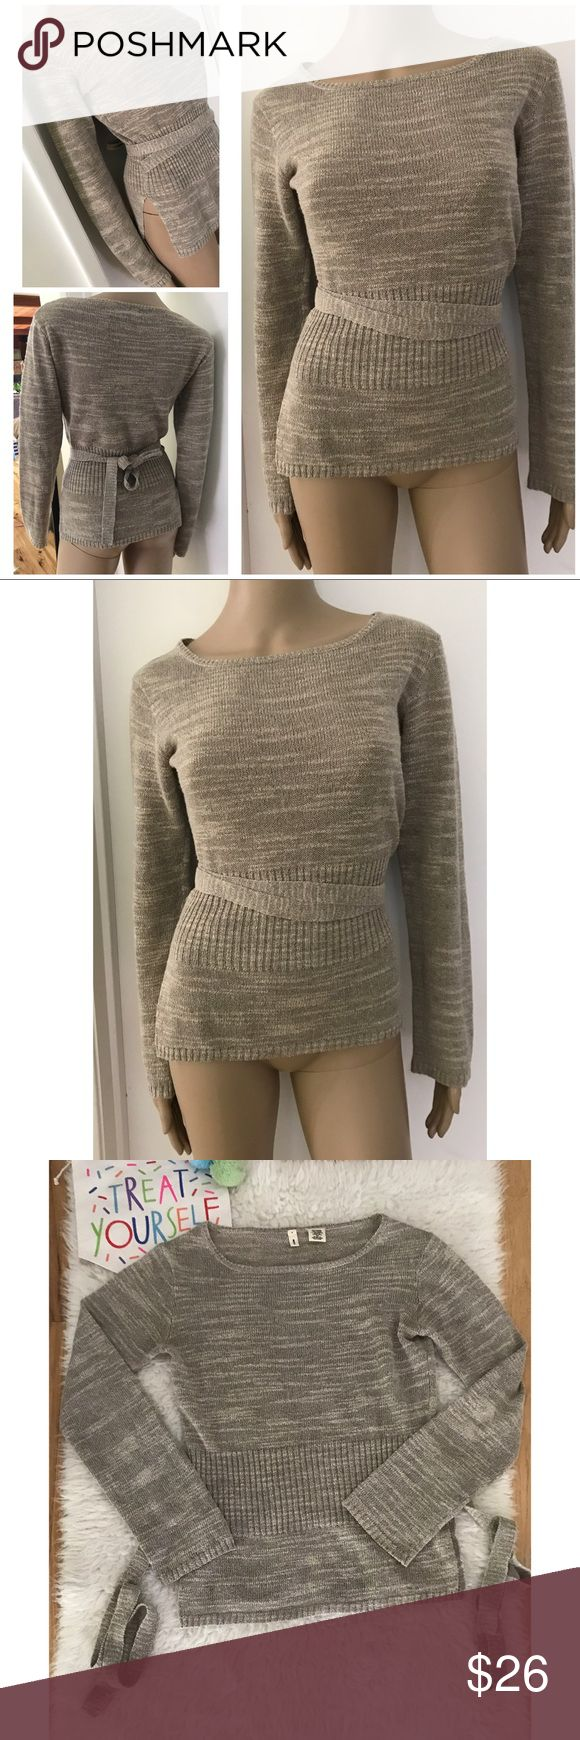 "EUC Anthropologie Moth Knit Waist Tied Sweater In great pre-loved pullover Knit Sweater from Moth in size x-small. Stretch so might fit a small too. Small slit on the side with waist sash belt. In a gray color. Measure about 23"" length, 17"" pit to pit, 22"" sleeves. No major flaws/pilings/snag. In almost a brownish gray color so I a tagging the as brown/gray. ❌No modeling or trades. Always open to reasonable offers. Bundle and save 15%. Thank you‼️ Anthropologie Sweaters Crew & Scoop Necks"